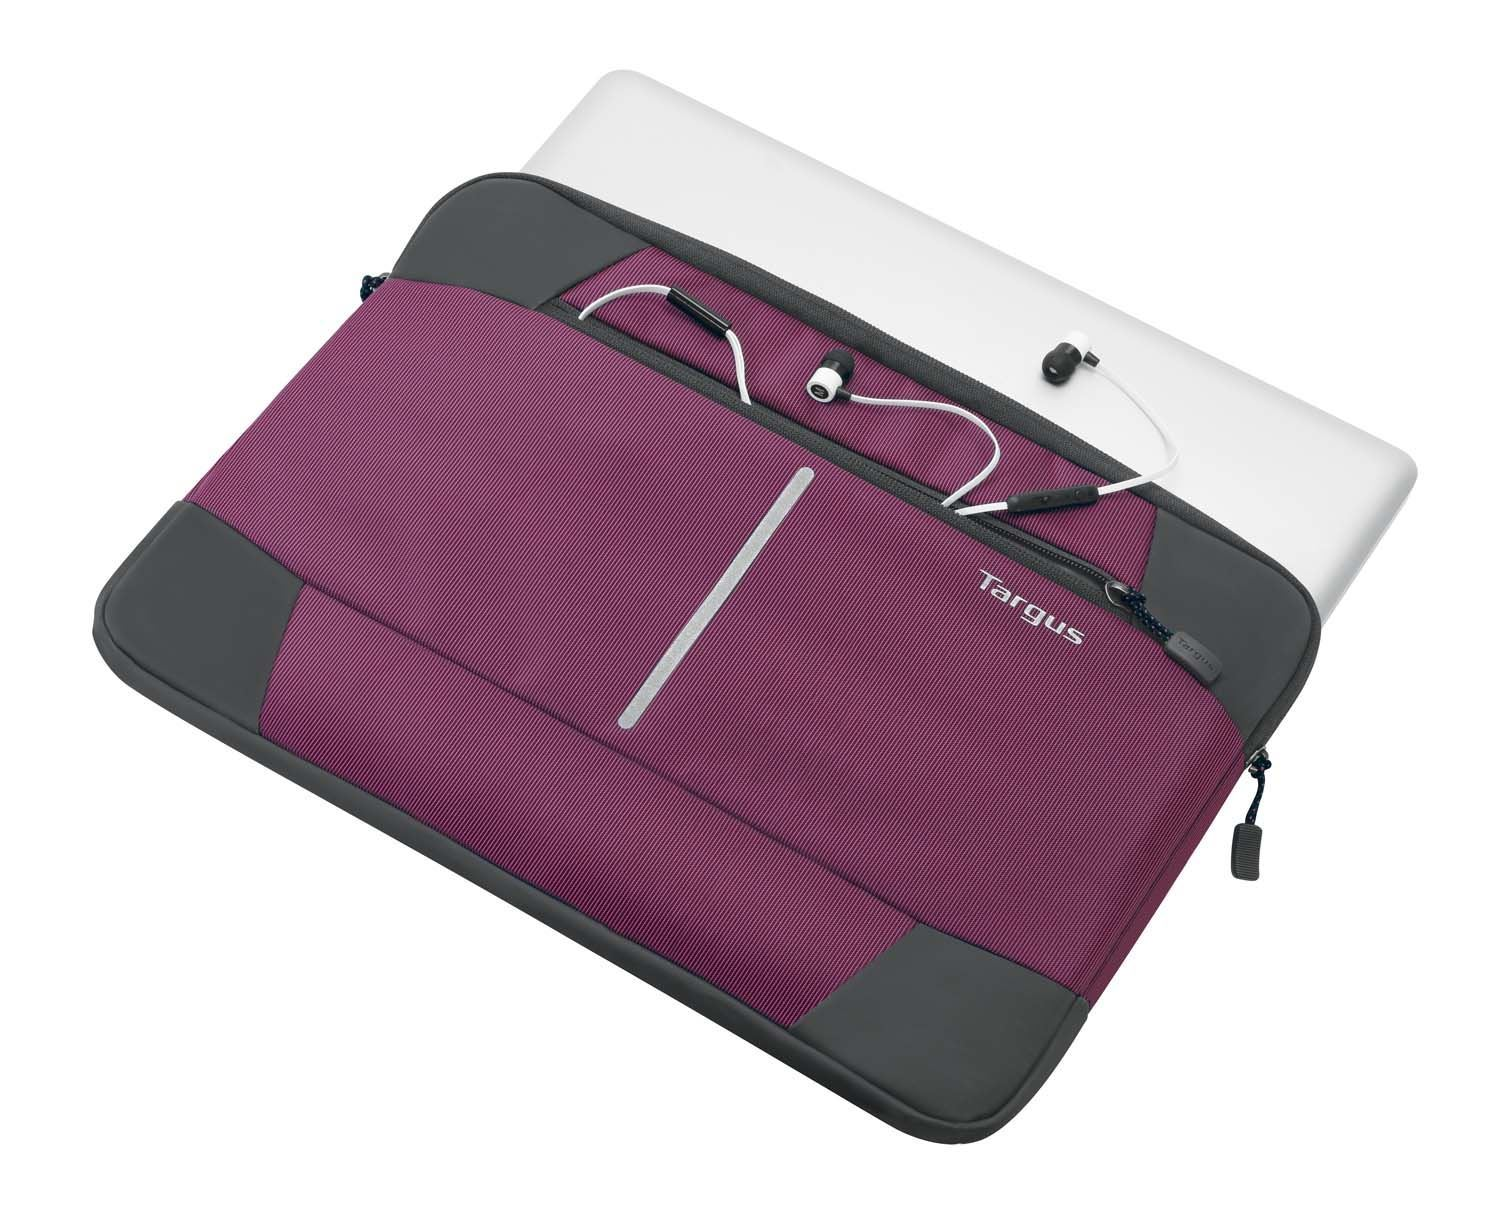 TSS96101AU - 11-12_ Bex II Sleeve - Baton Rouge Top with Macbook